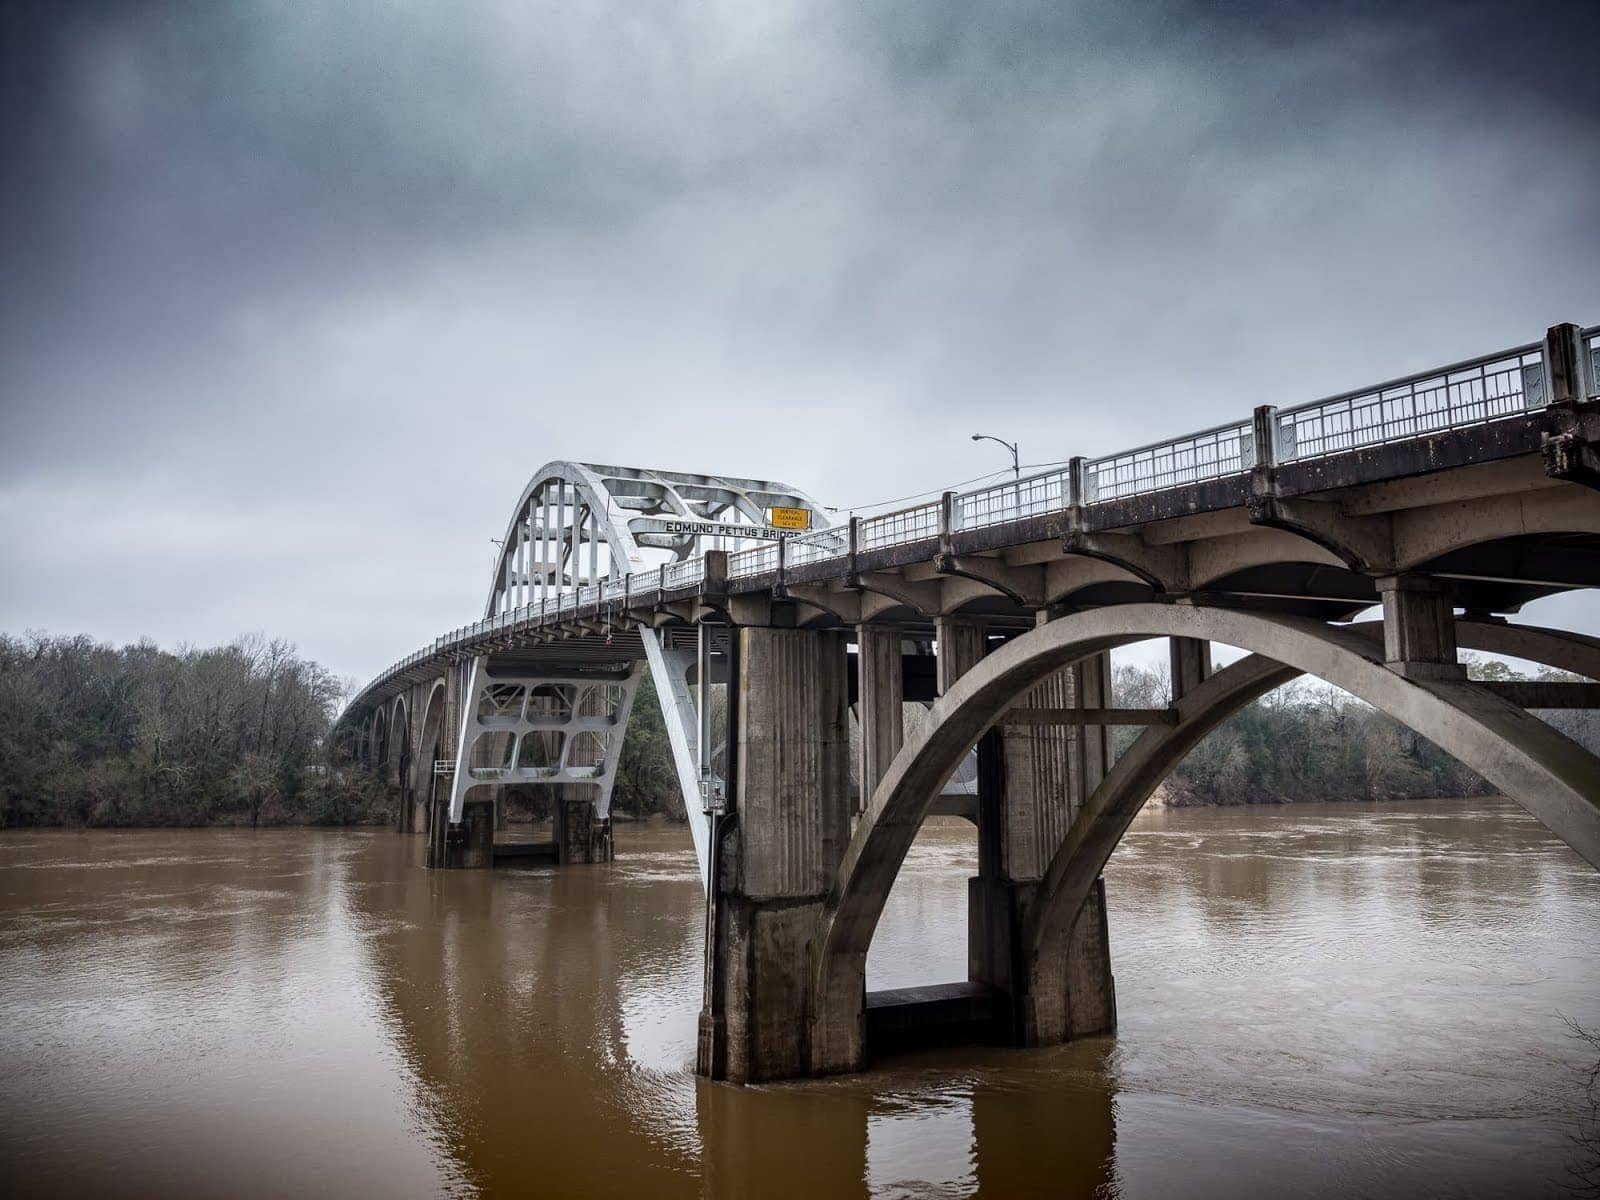 Edmund Pettus Bridge Selma Alabama by Laurence Norah